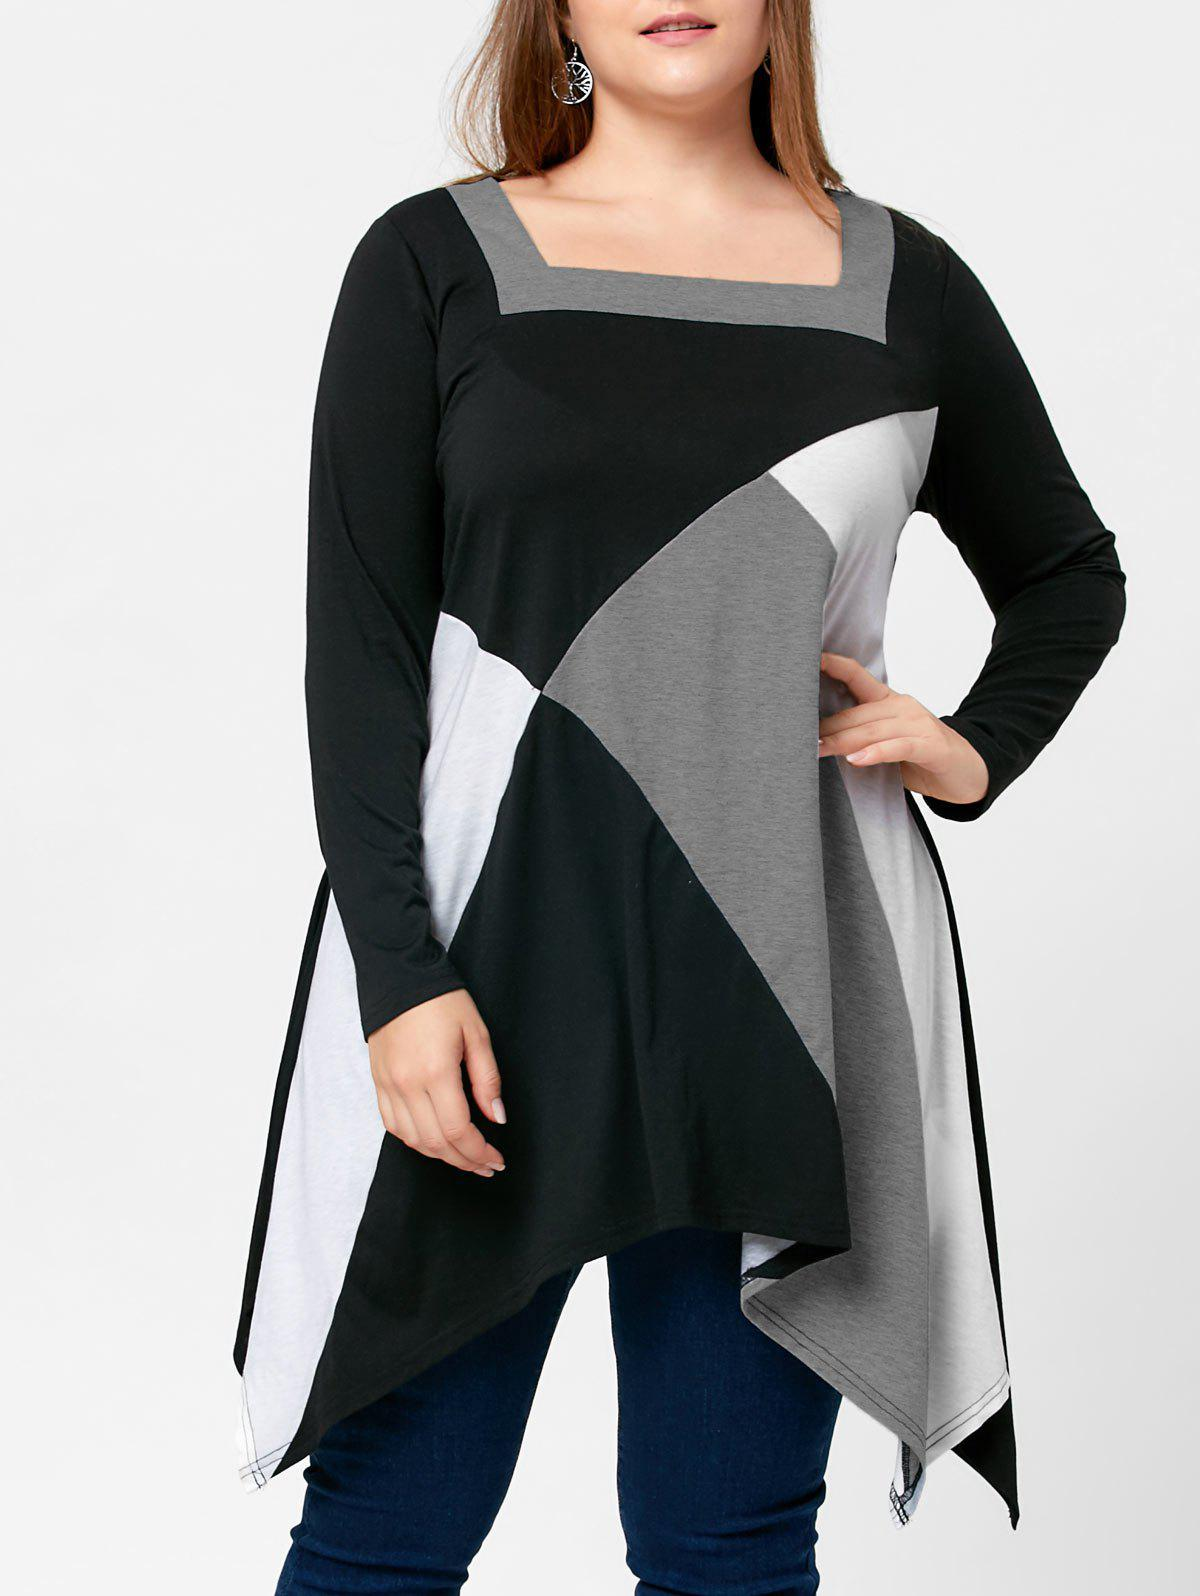 Plus Size Square Neck Handkerchief T-shirtWOMEN<br><br>Size: XL; Color: BLACK; Material: Polyester,Spandex; Shirt Length: Long; Sleeve Length: Full; Collar: Square Neck; Style: Casual; Season: Fall,Spring; Pattern Type: Others,Solid; Weight: 0.3700kg; Package Contents: 1 x Top;